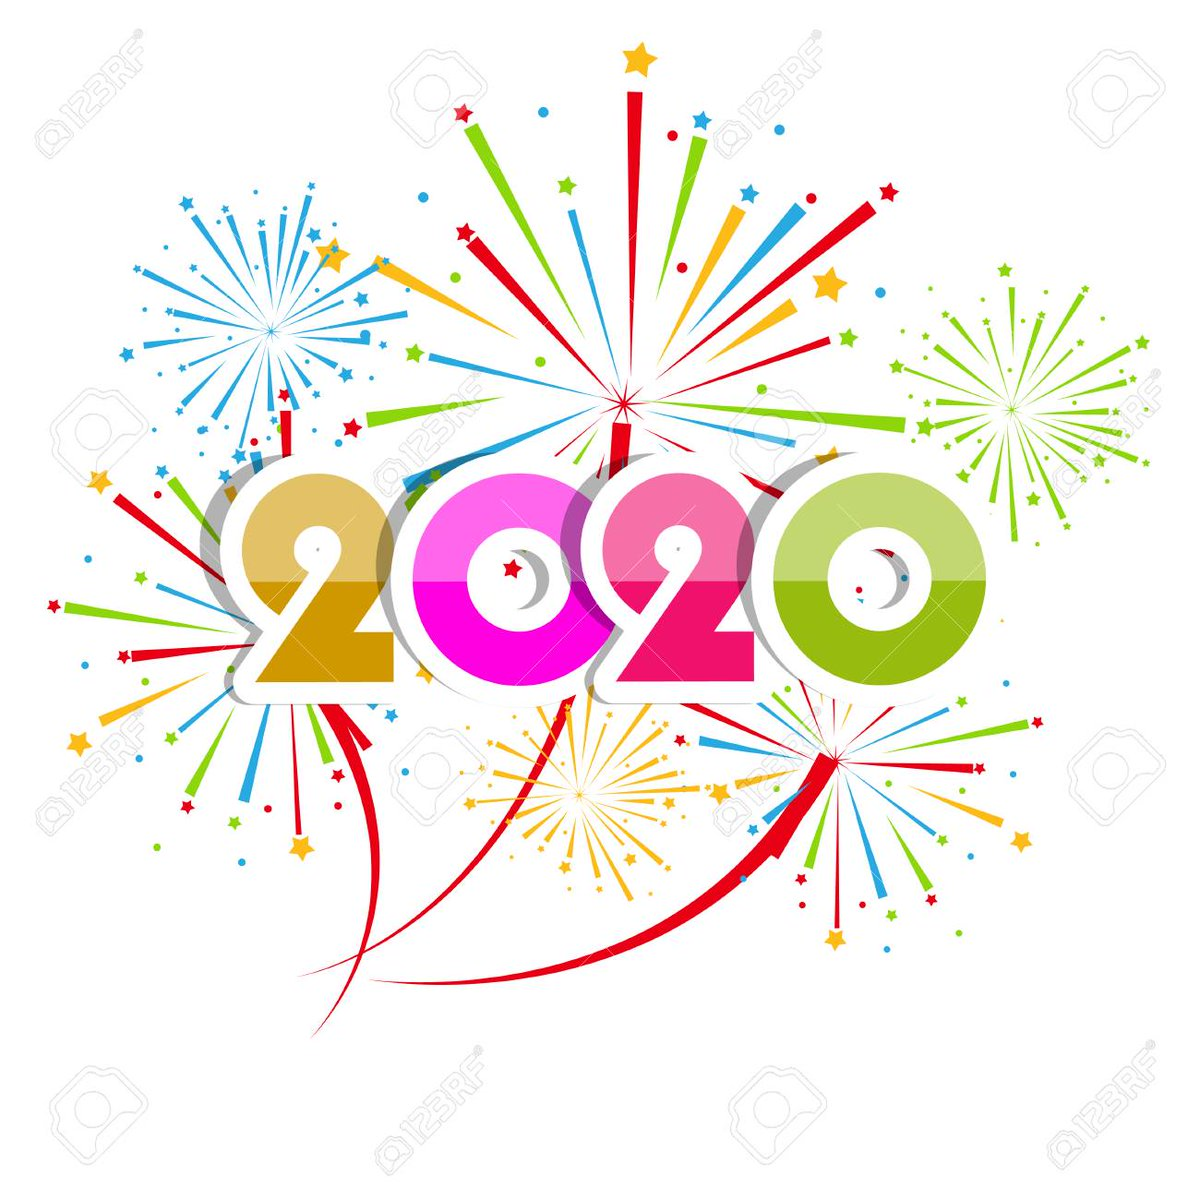 Happy New Year from all of us at Tonis Kitchen!